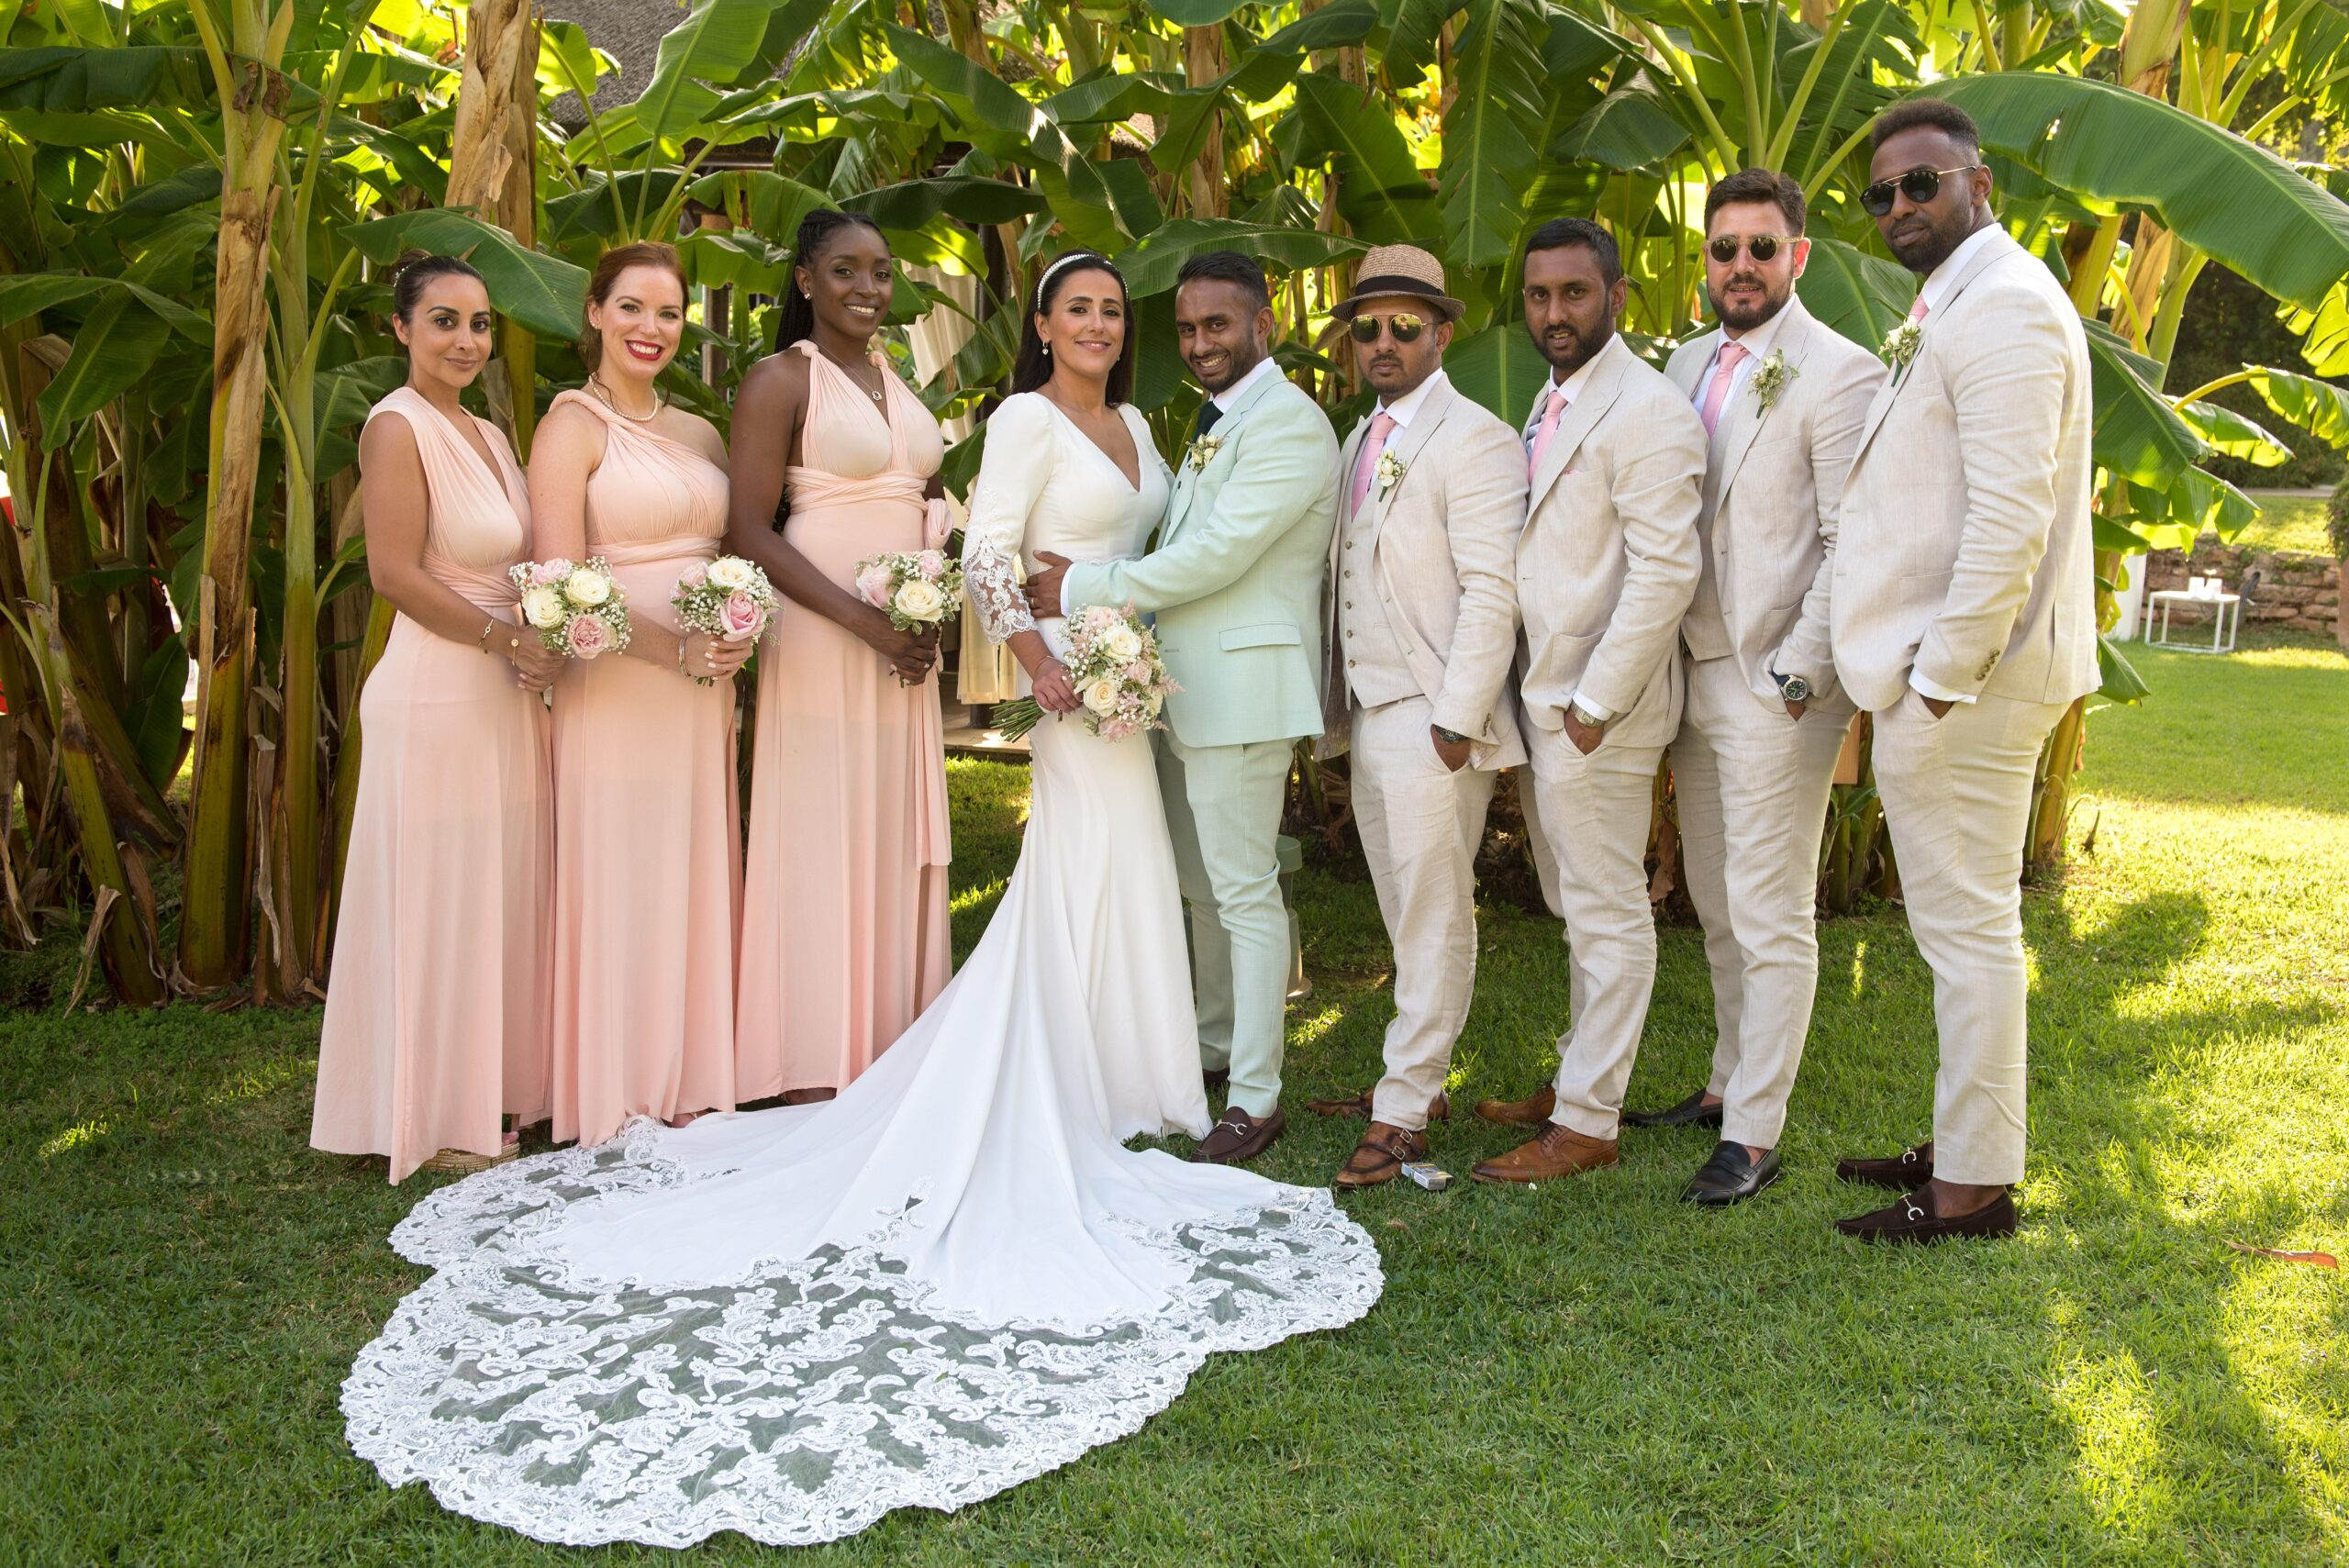 The bride and groom with their bridesmaids and attendants